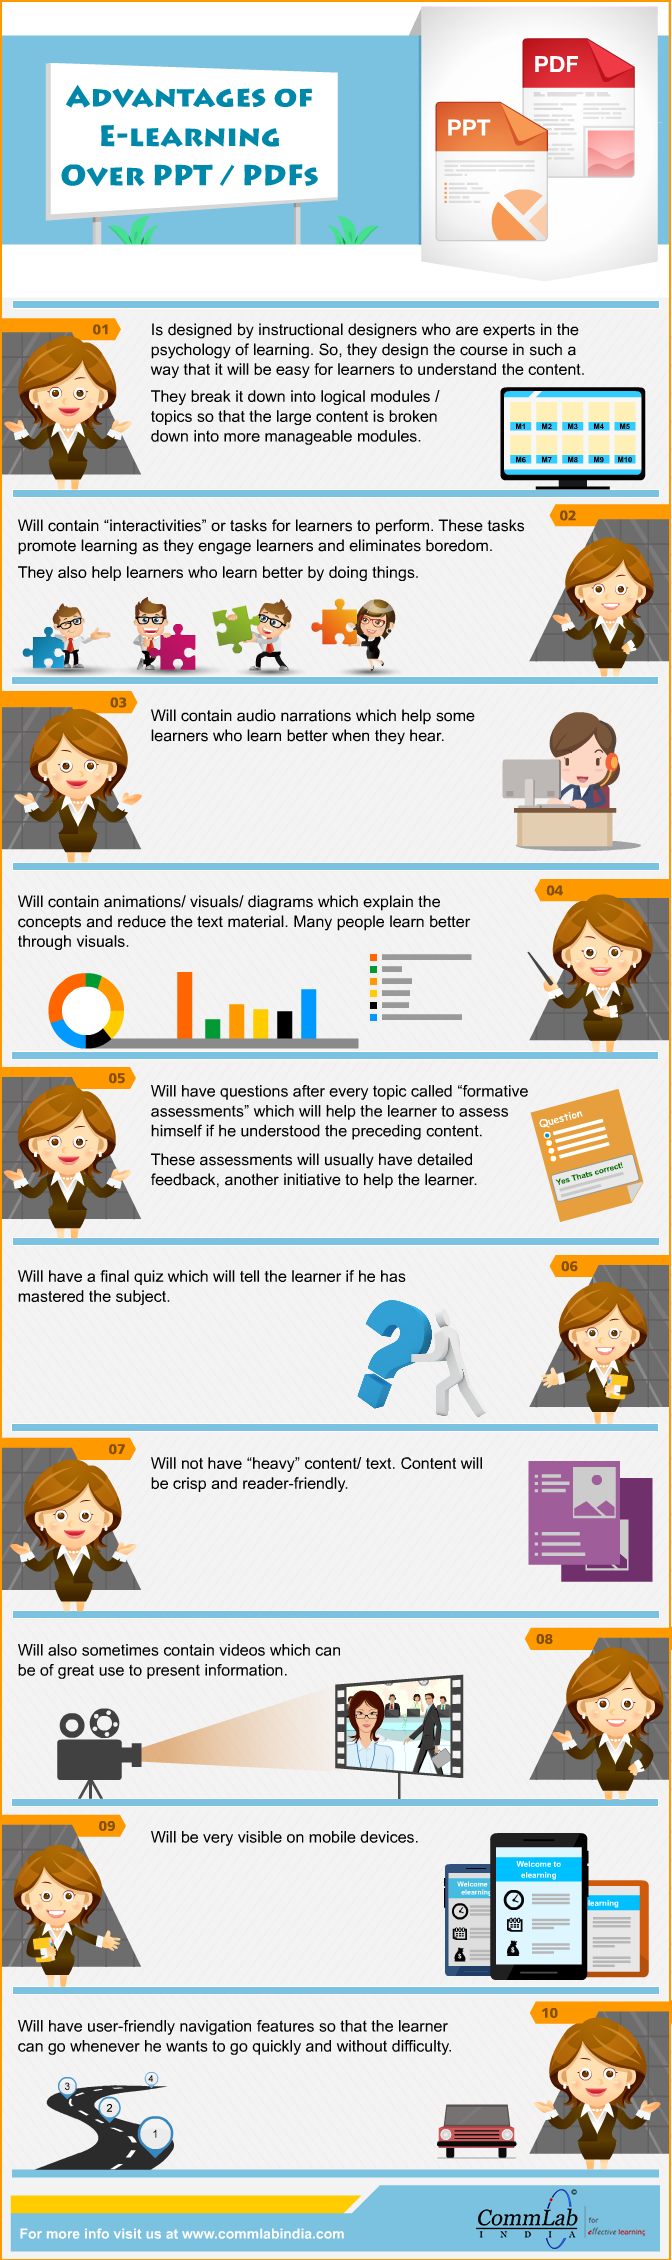 E-learning - Why Is It More Effective Than PPT and PDF Files [Infographic]